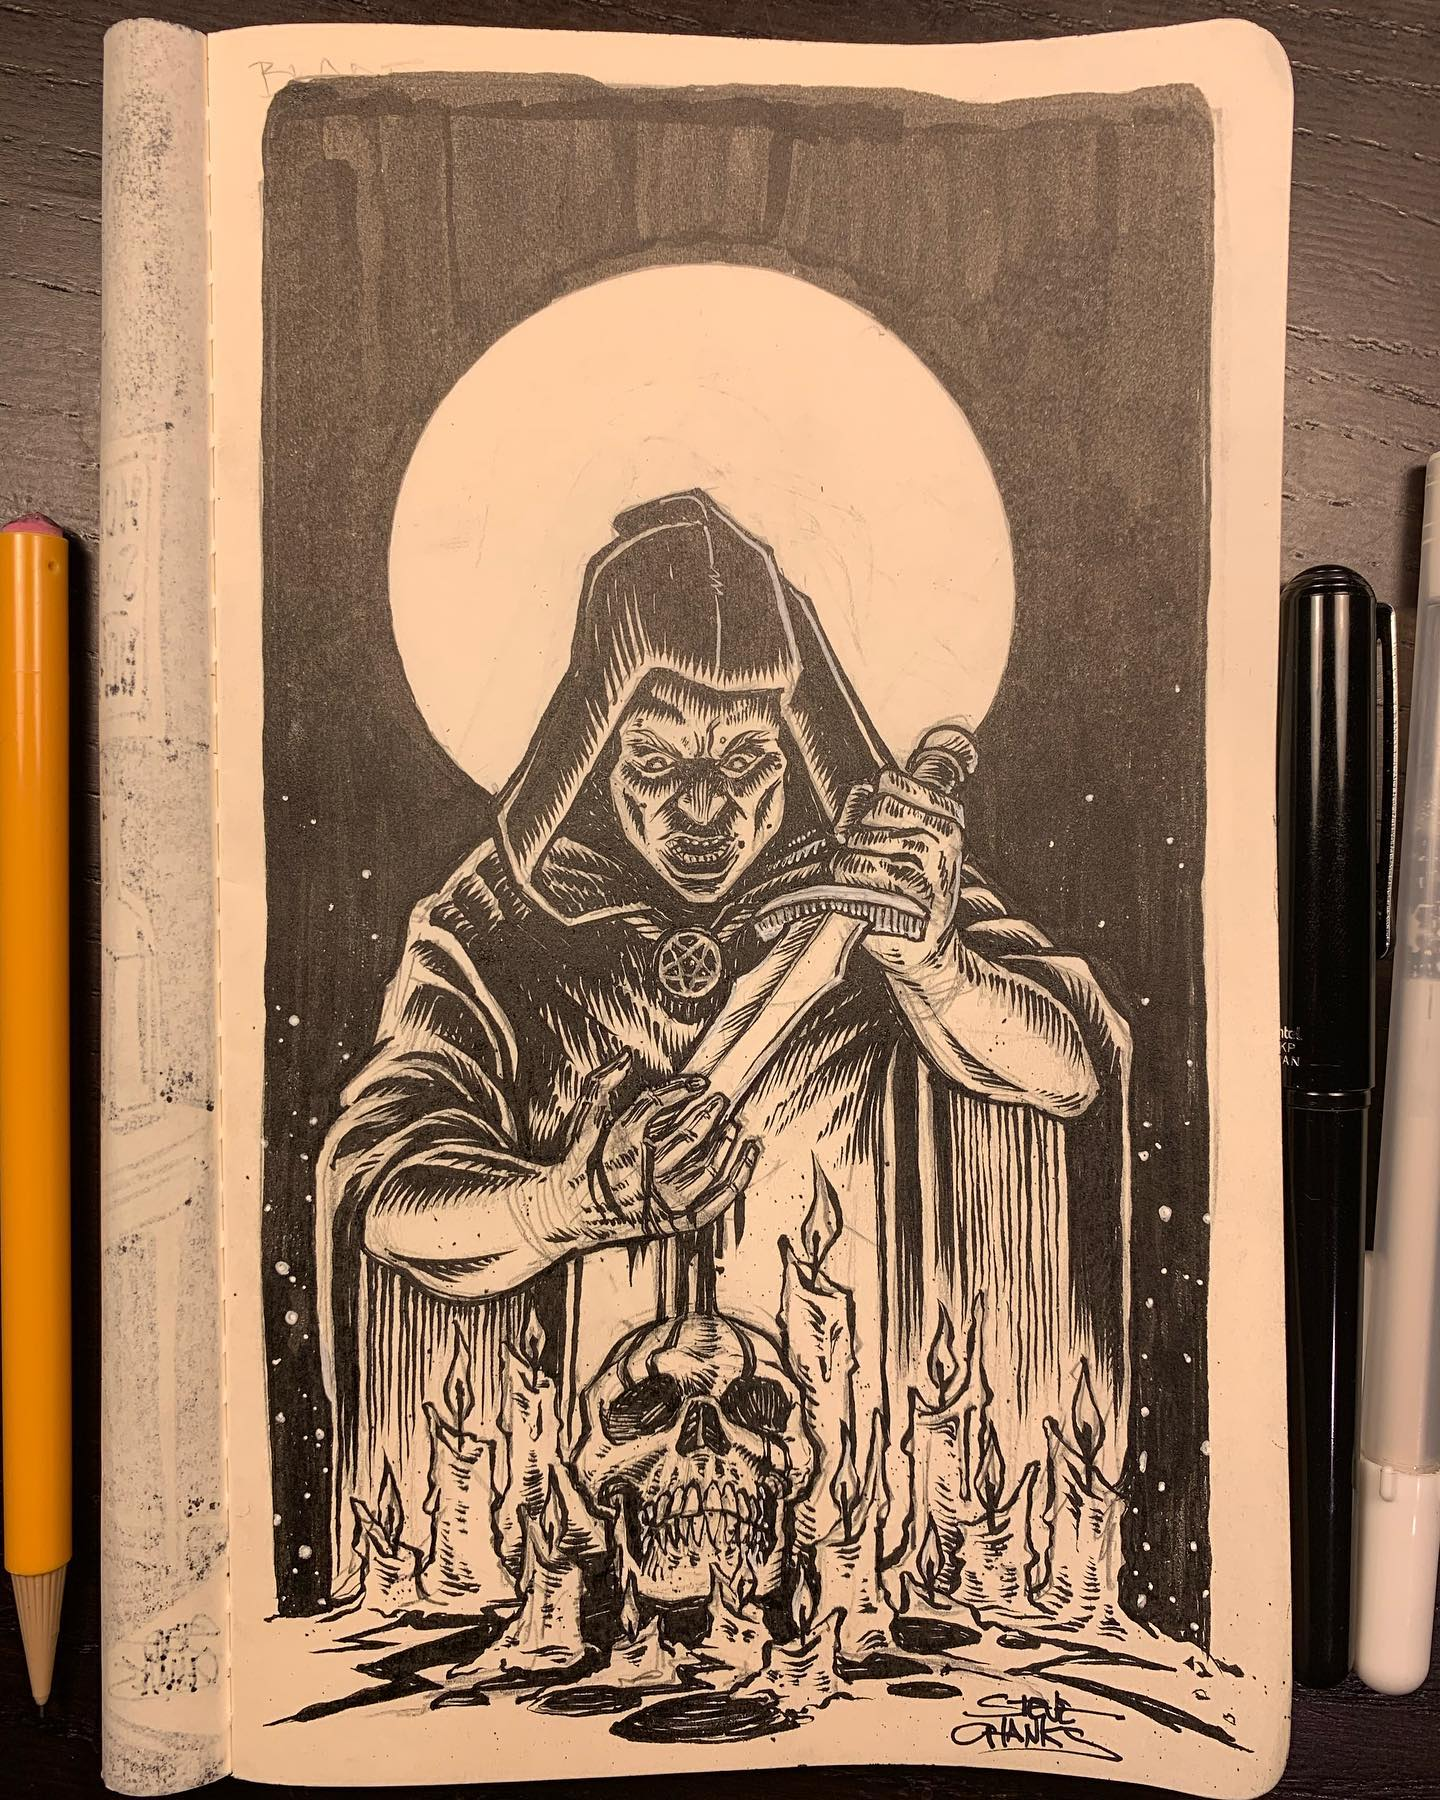 I'll get through #drawlloween2020 and #inktober2020, I promise!!! This is day five, Blade and I got all ritualistic and occulty with it. What's your favorite blood sacrifice? Tee hee (nervous laughter...)...#Drawlloween #inktober #drawing #illustration #blackandwhitedrawing #blackandwhiteillustration #inkdrawing #pentelbrushpen #sketchbook #penandinkdrawing #sketch #dailydrawing #instaart #artistsoninstagram #moleskine #horror #horrorart #scary #spookyart @moleskine @pentelusa